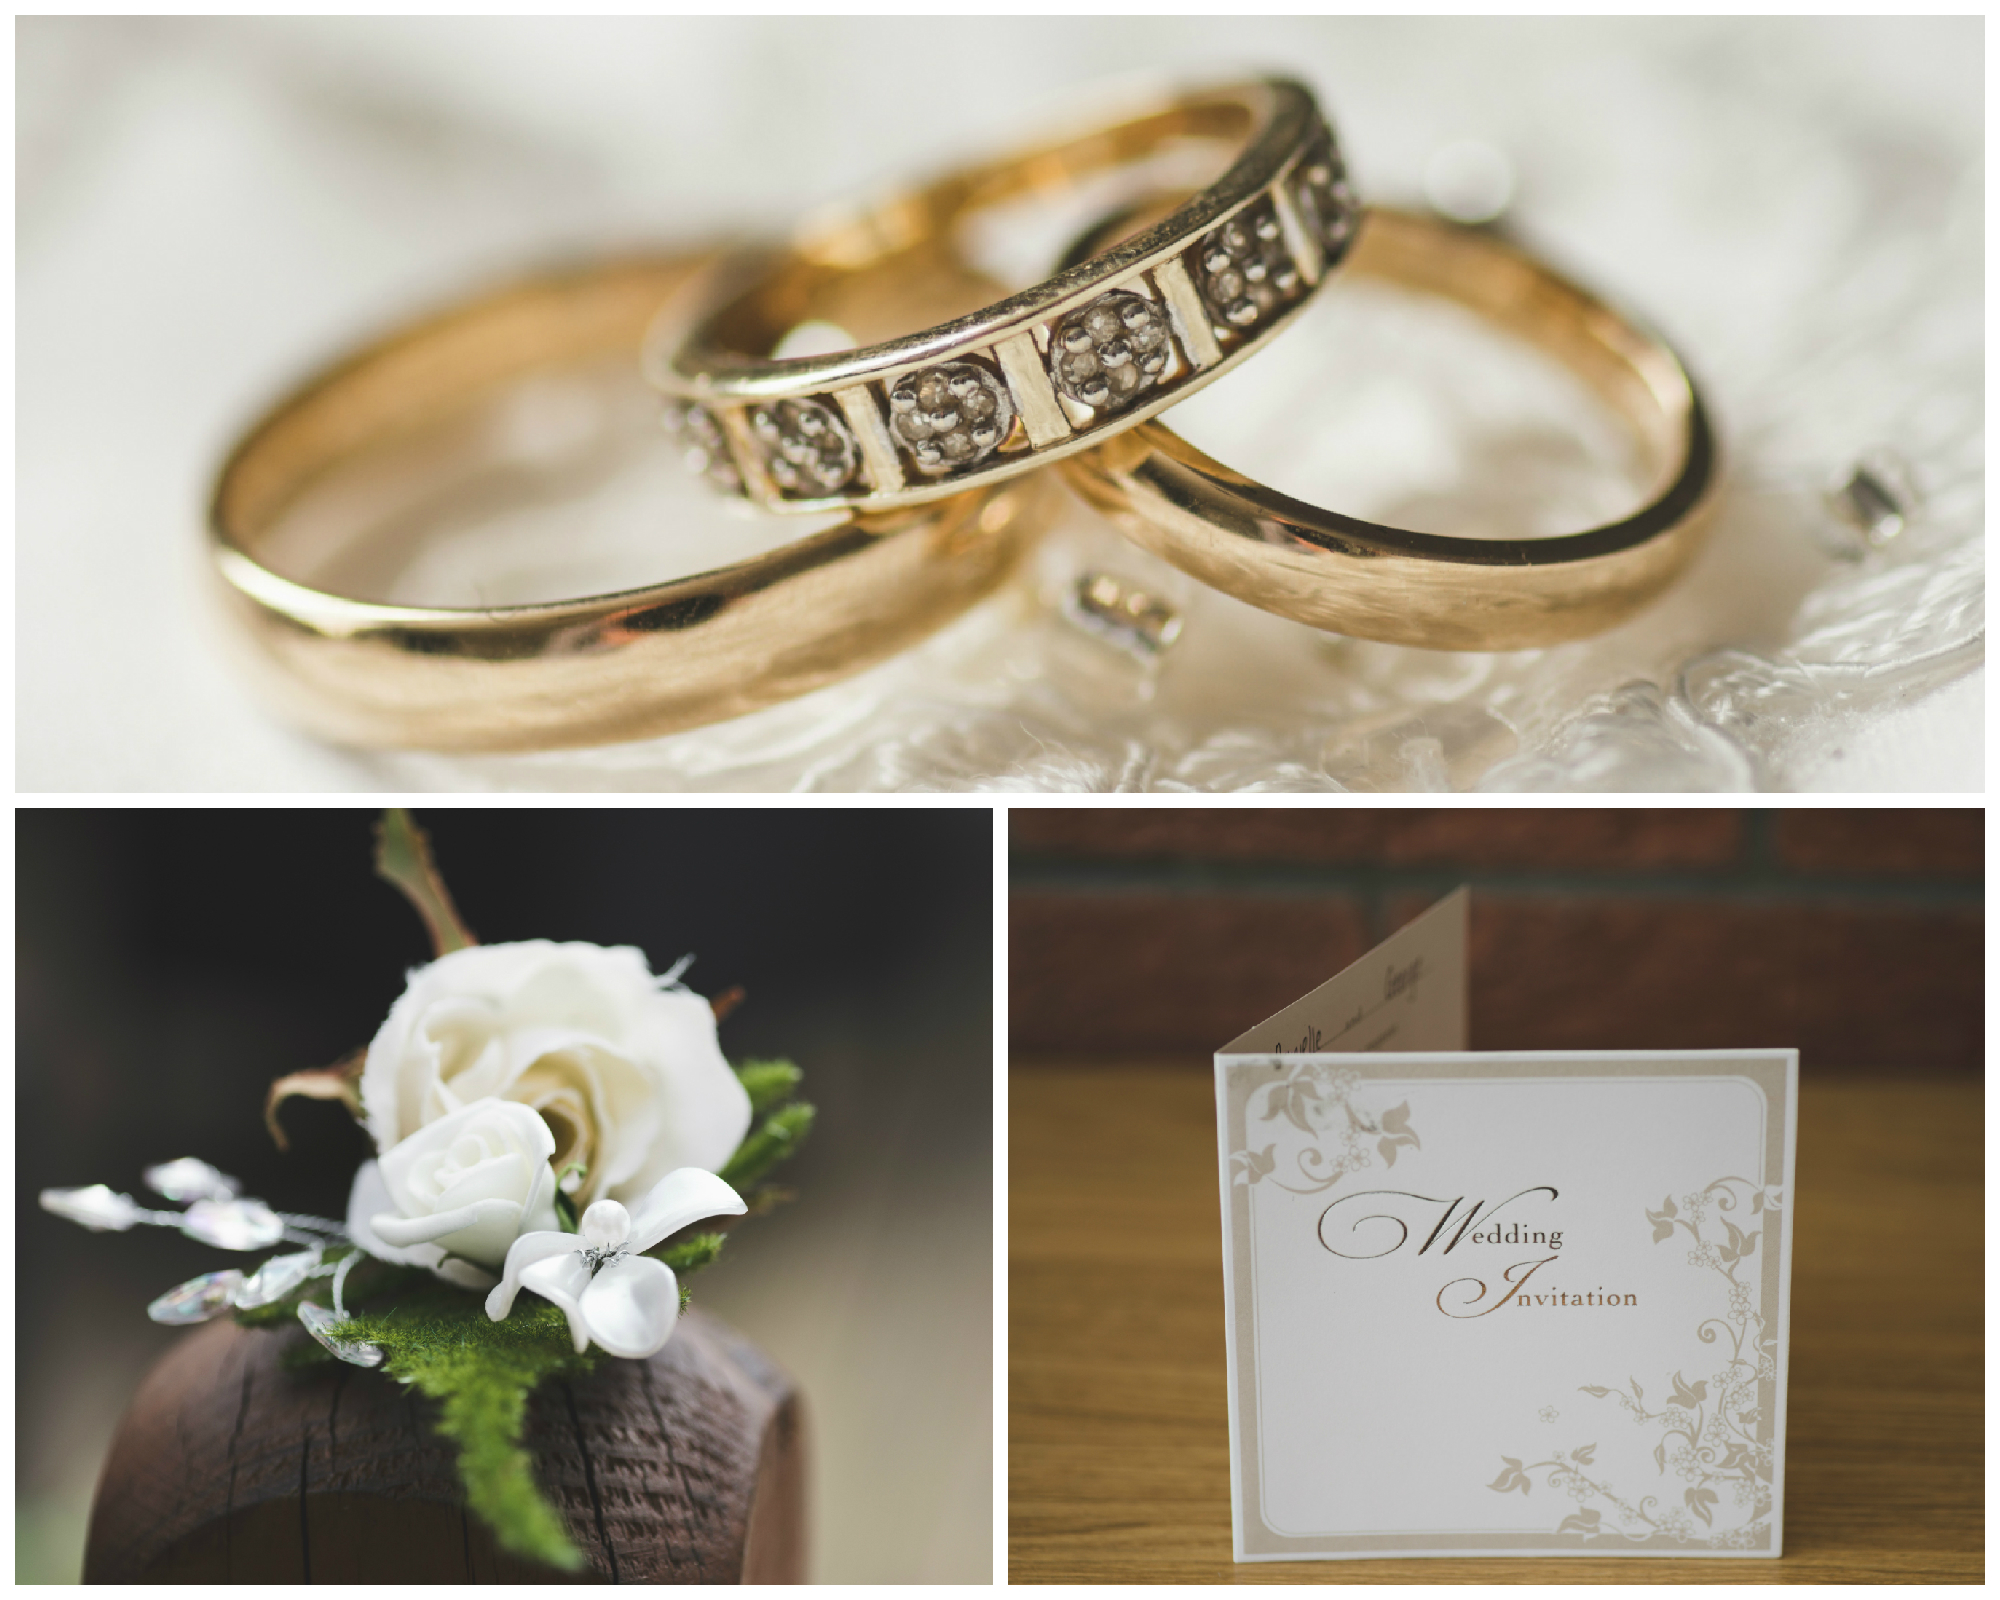 Northern_Ireland_Wedding_Photographer_Wedding_Invite_Wedding_Ring